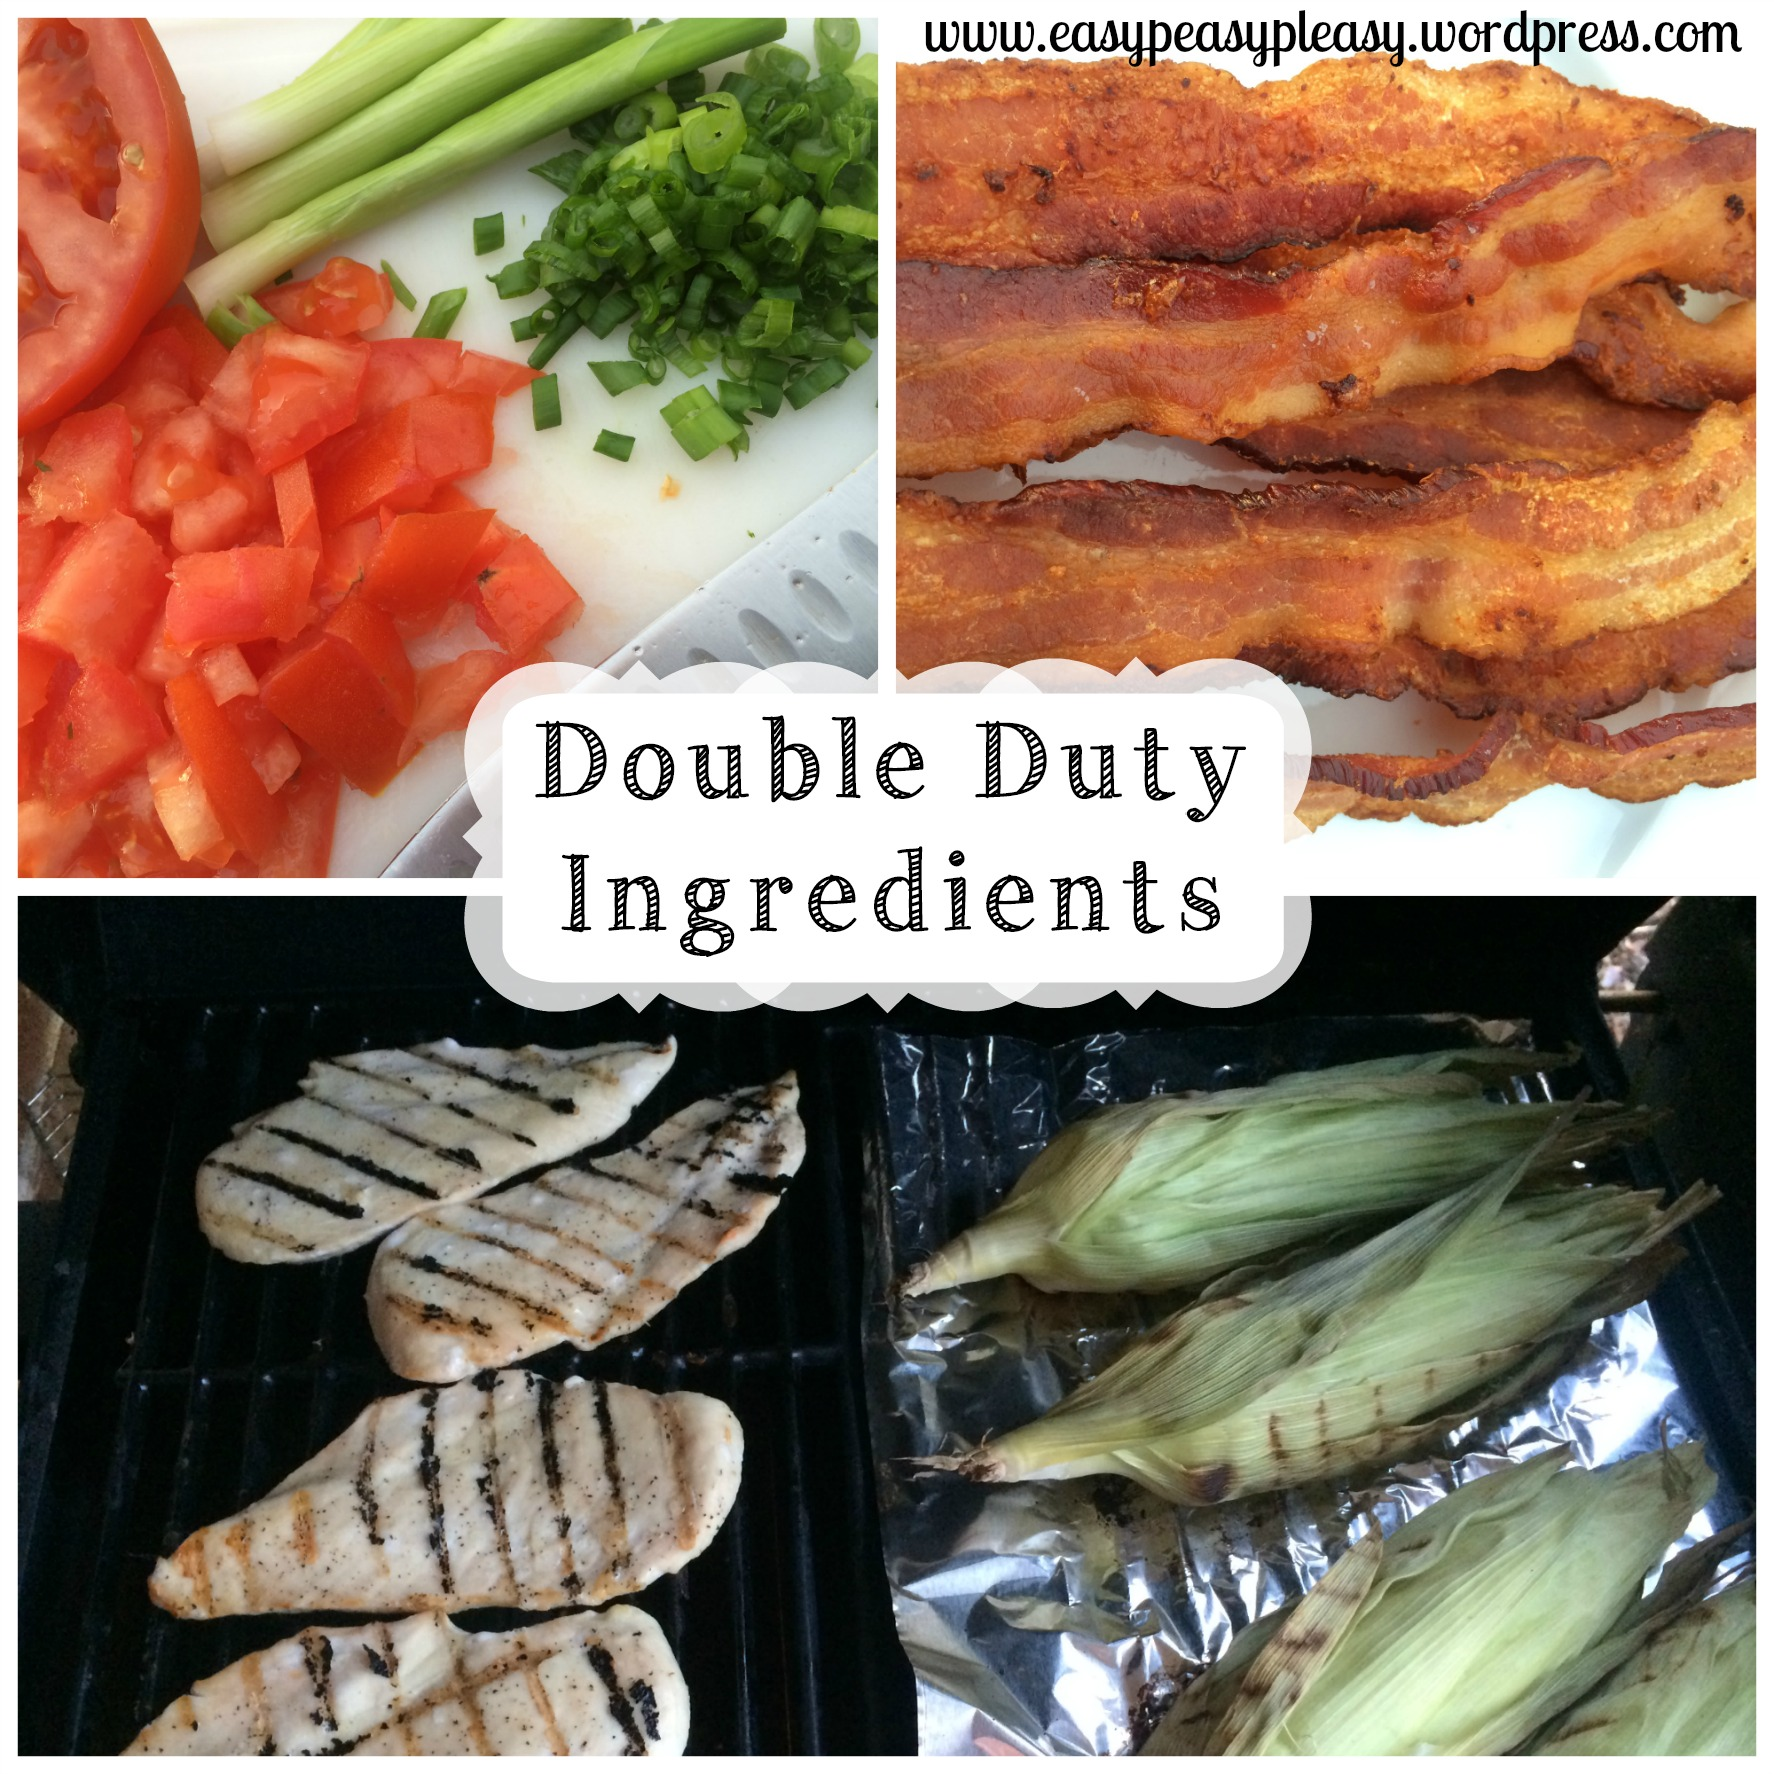 Double Duty Ingredients for Double Duty Grilled Chicken Recipes at https://easypeasypleasy.com